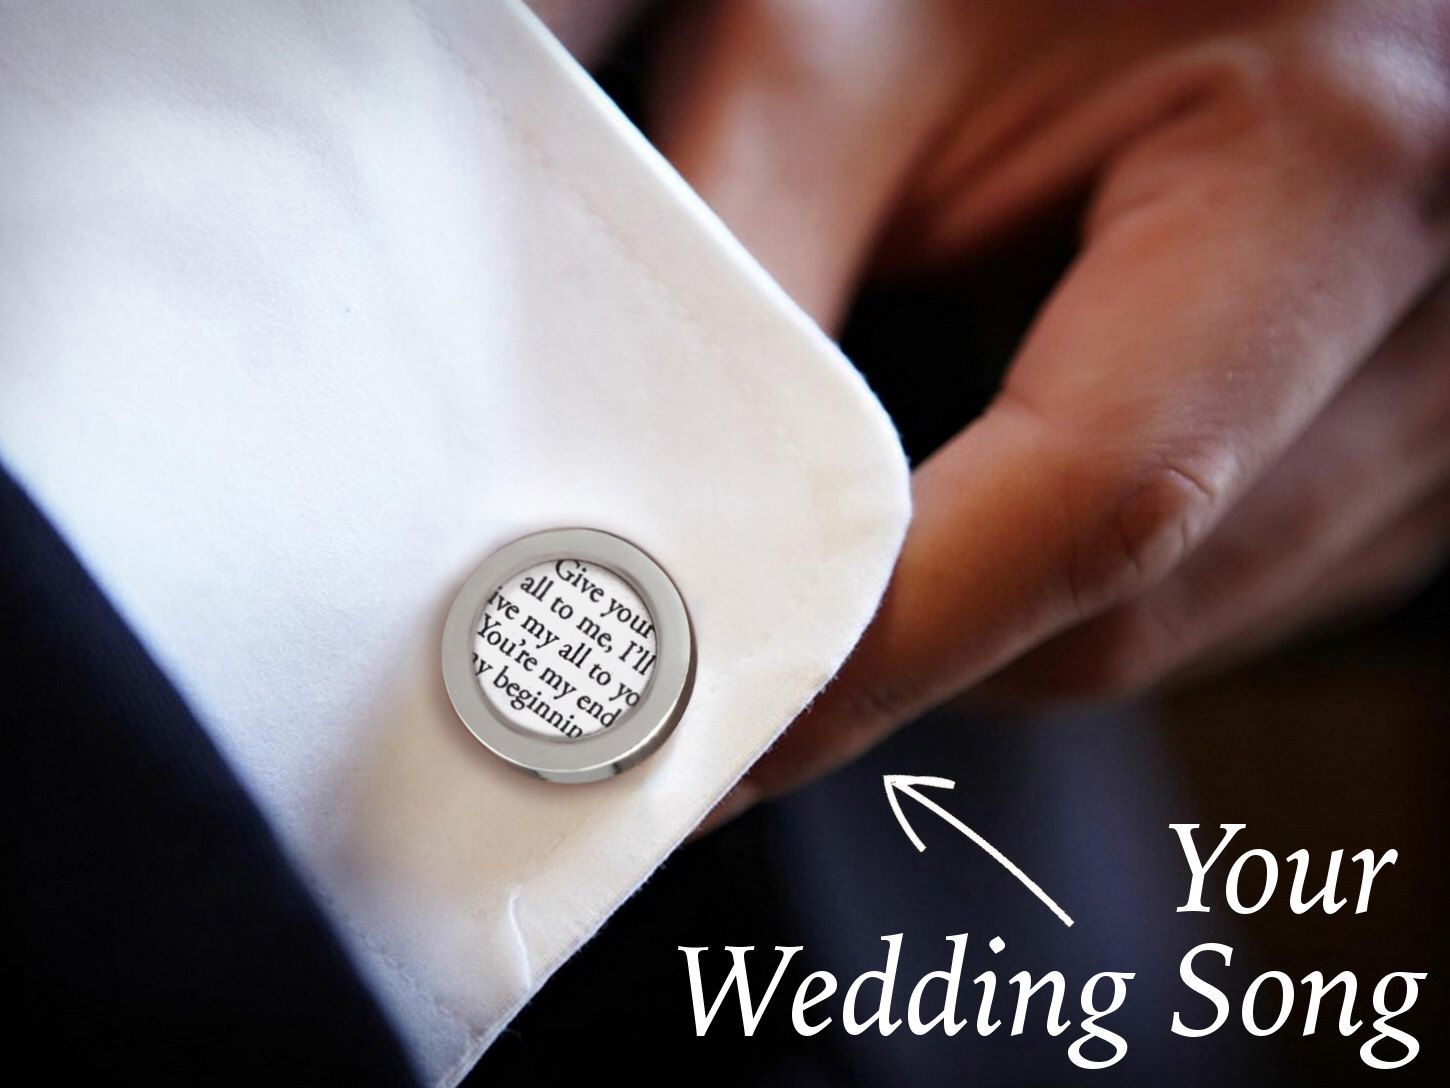 invitation wedding wording gifts%0A Personalized Wedding Cufflinks   Groom Cufflinks   Custom Cufflinks with  your Wedding Song Lyrics   Groom Gift   Gift for Husband